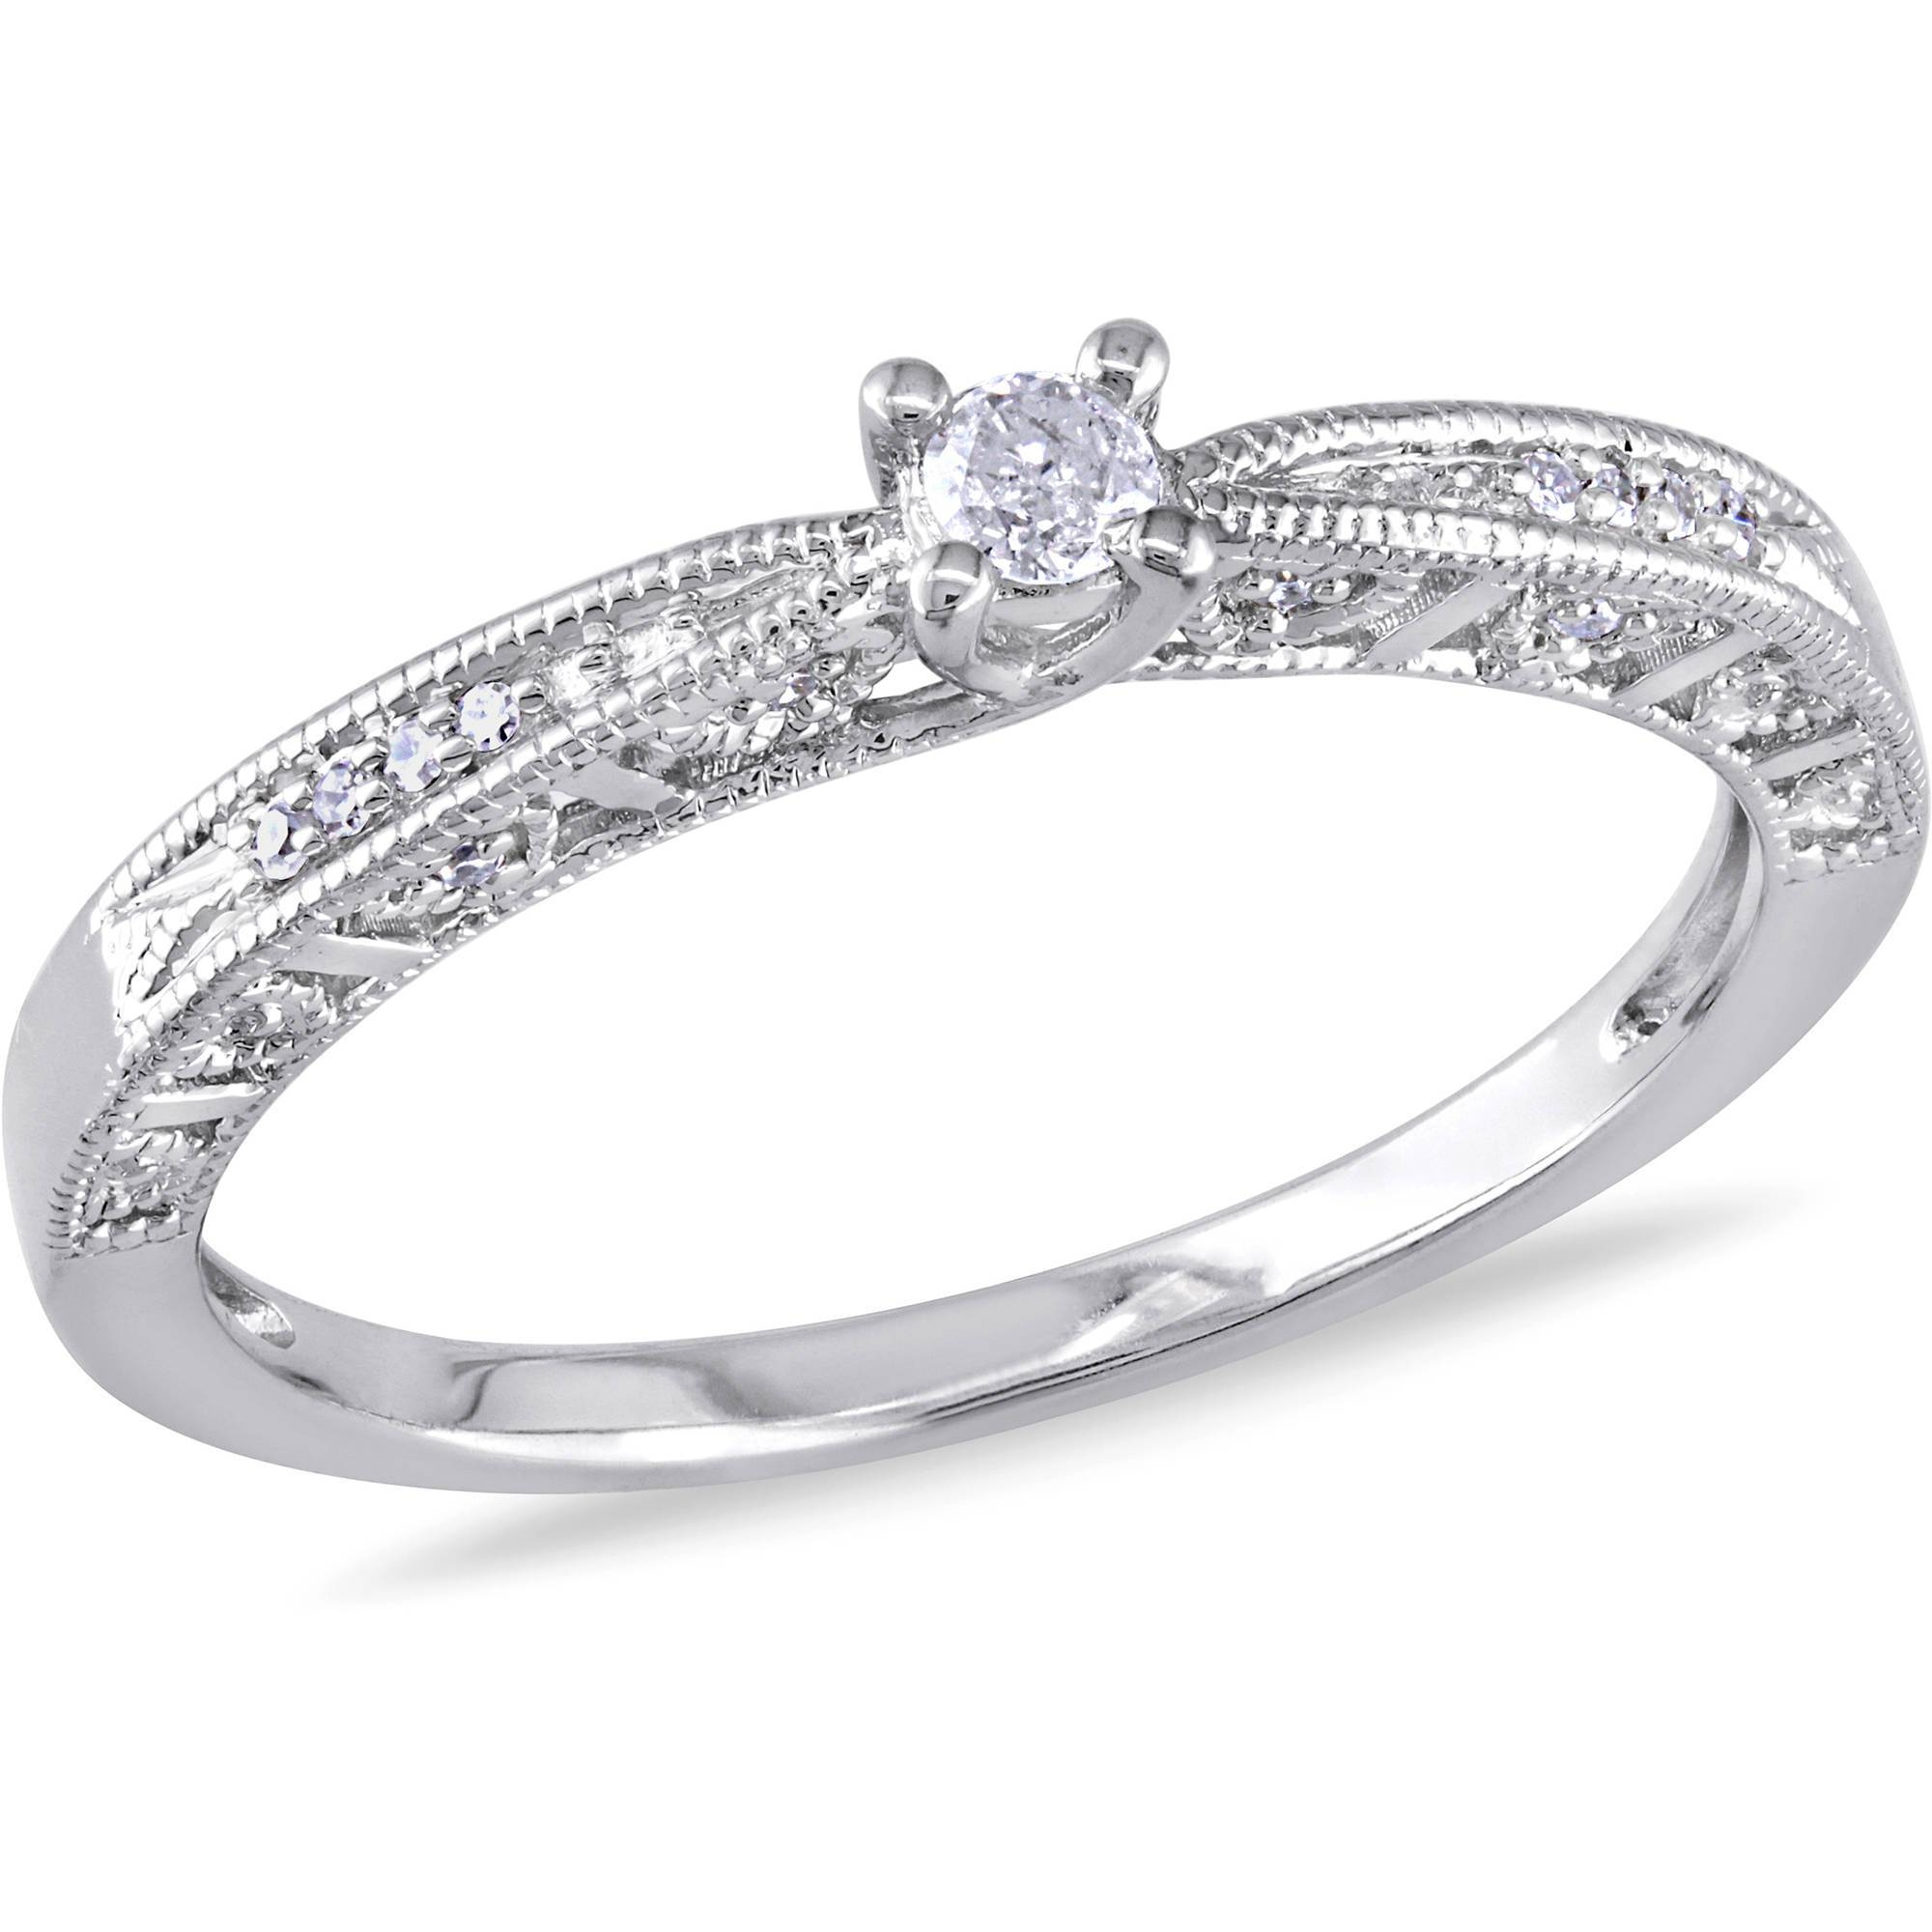 Miabella 1/10 Carat T.w. Diamond Sterling Silver Engagement Ring Pertaining To Silver Engagement Bands (Gallery 5 of 15)